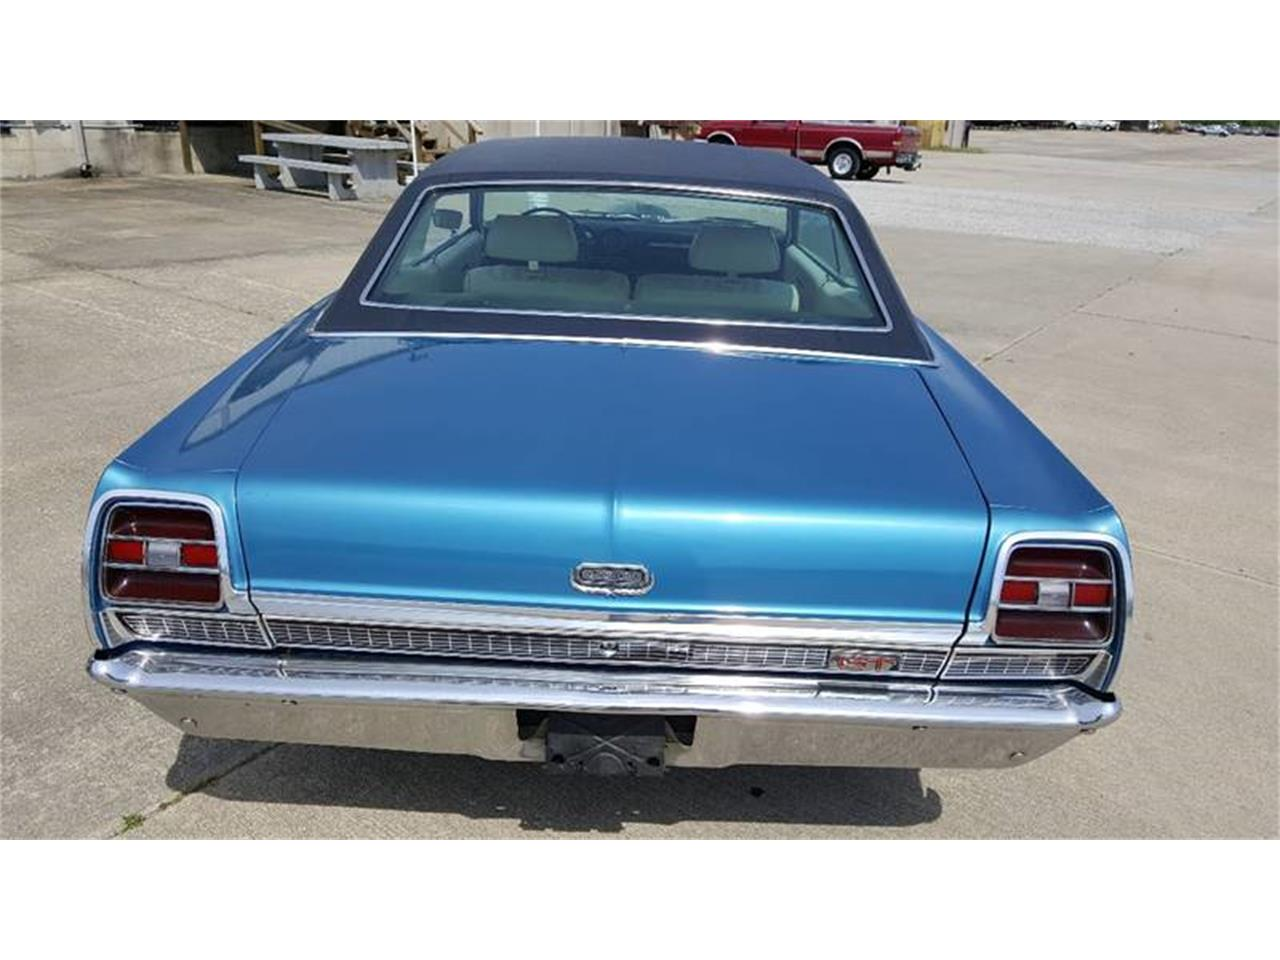 Large Picture of '69 Torino - $19,995.00 - LO15